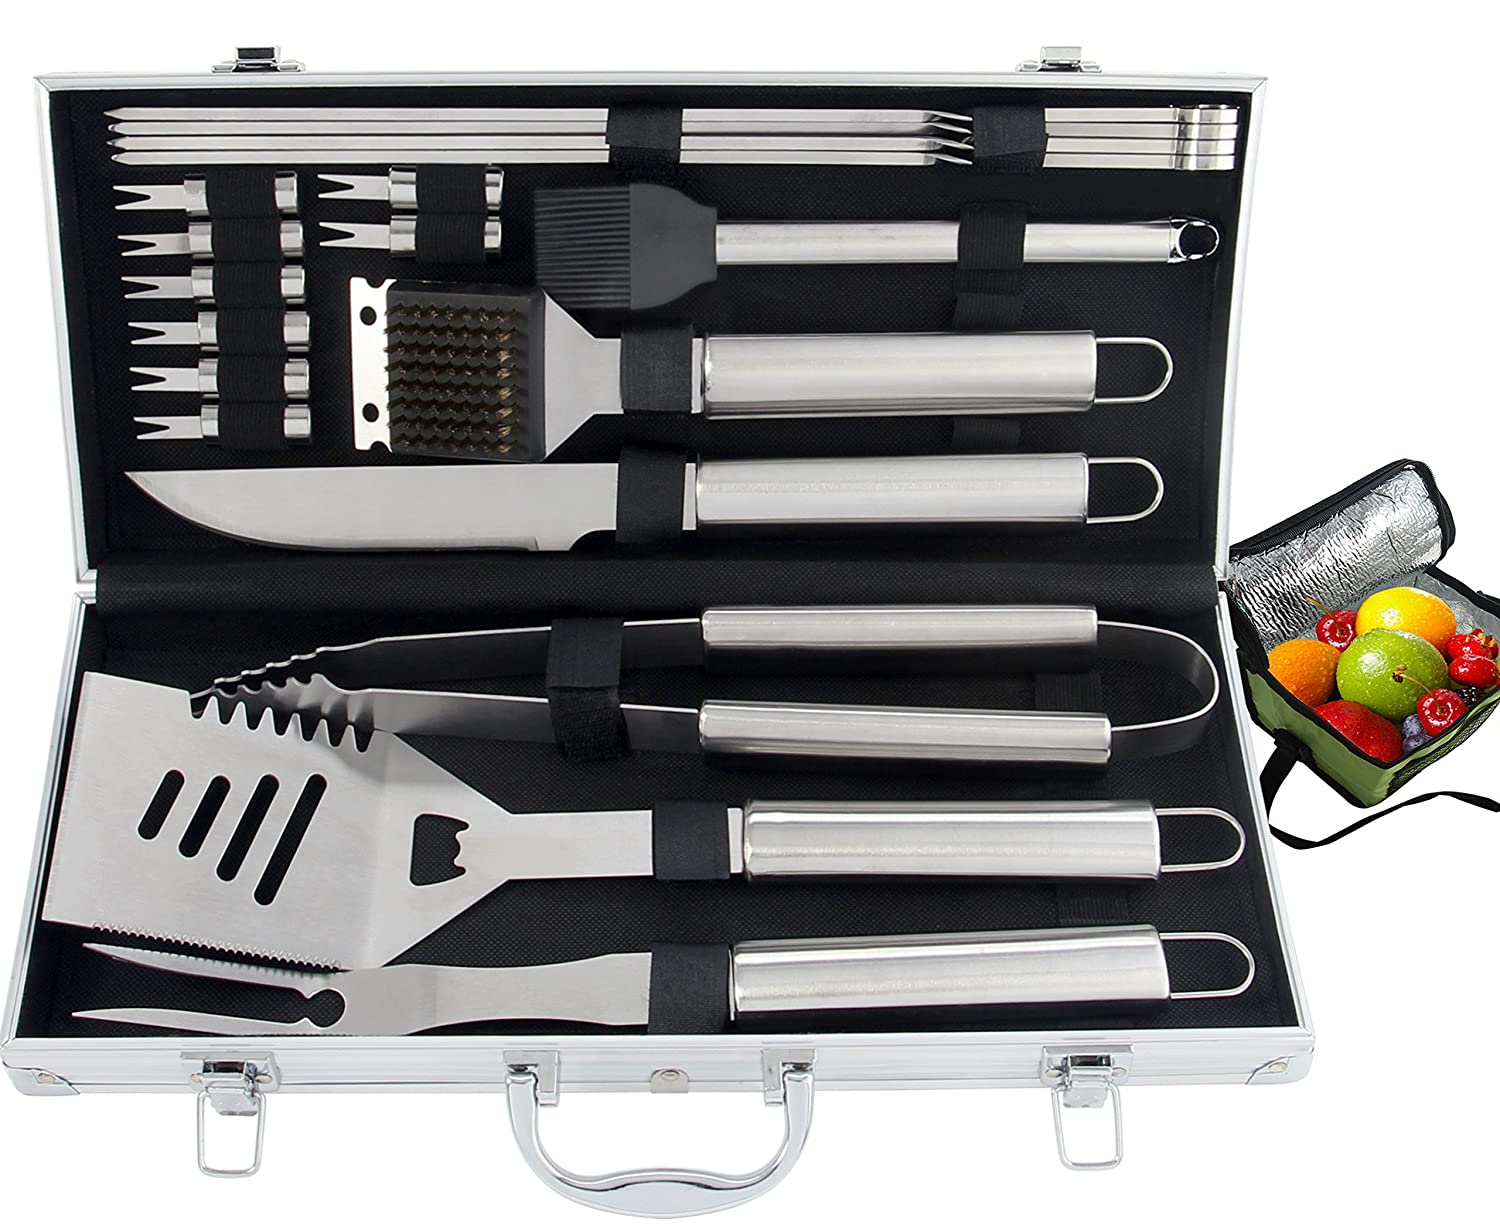 ROMANTICIST 20pc Heavy Duty BBQ Grill Tool Set with Cooler Bag for Men Dad in Gift Box - Outdoor Camping Tailgating Barbecue Gril Accessories in Aluminum Case B20-A01-1